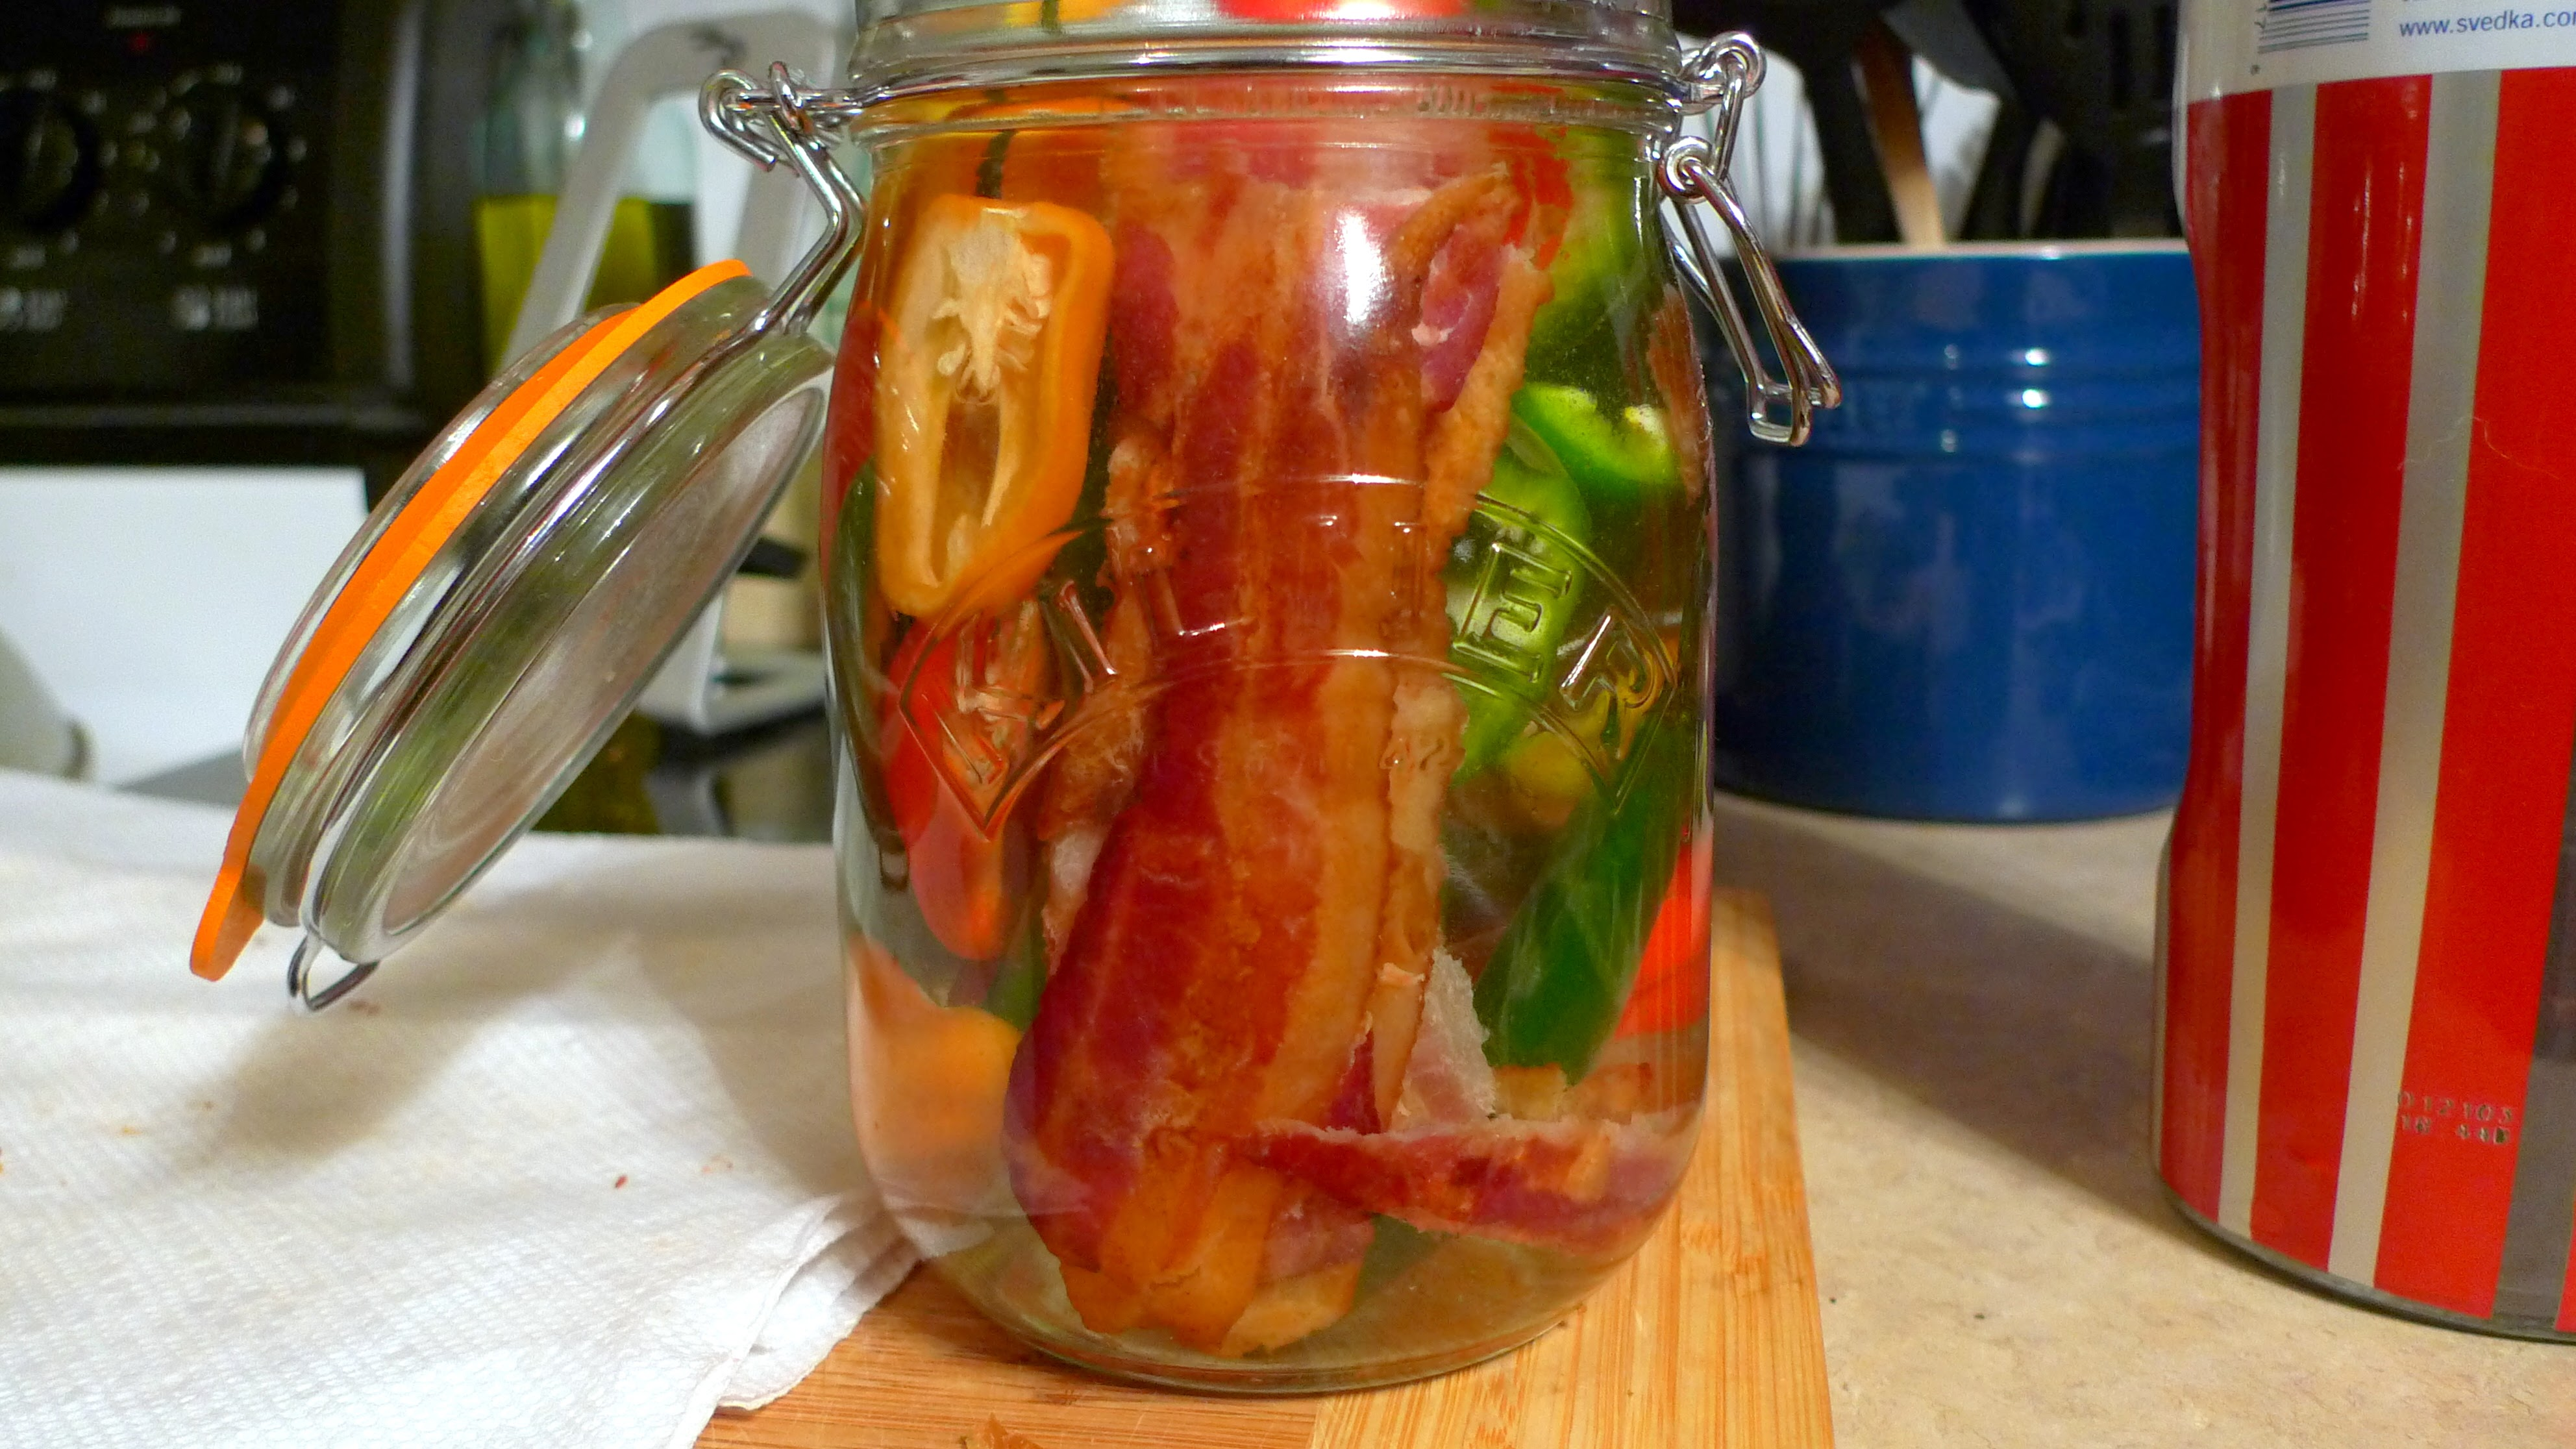 Bacon Habanero Infused Vodka